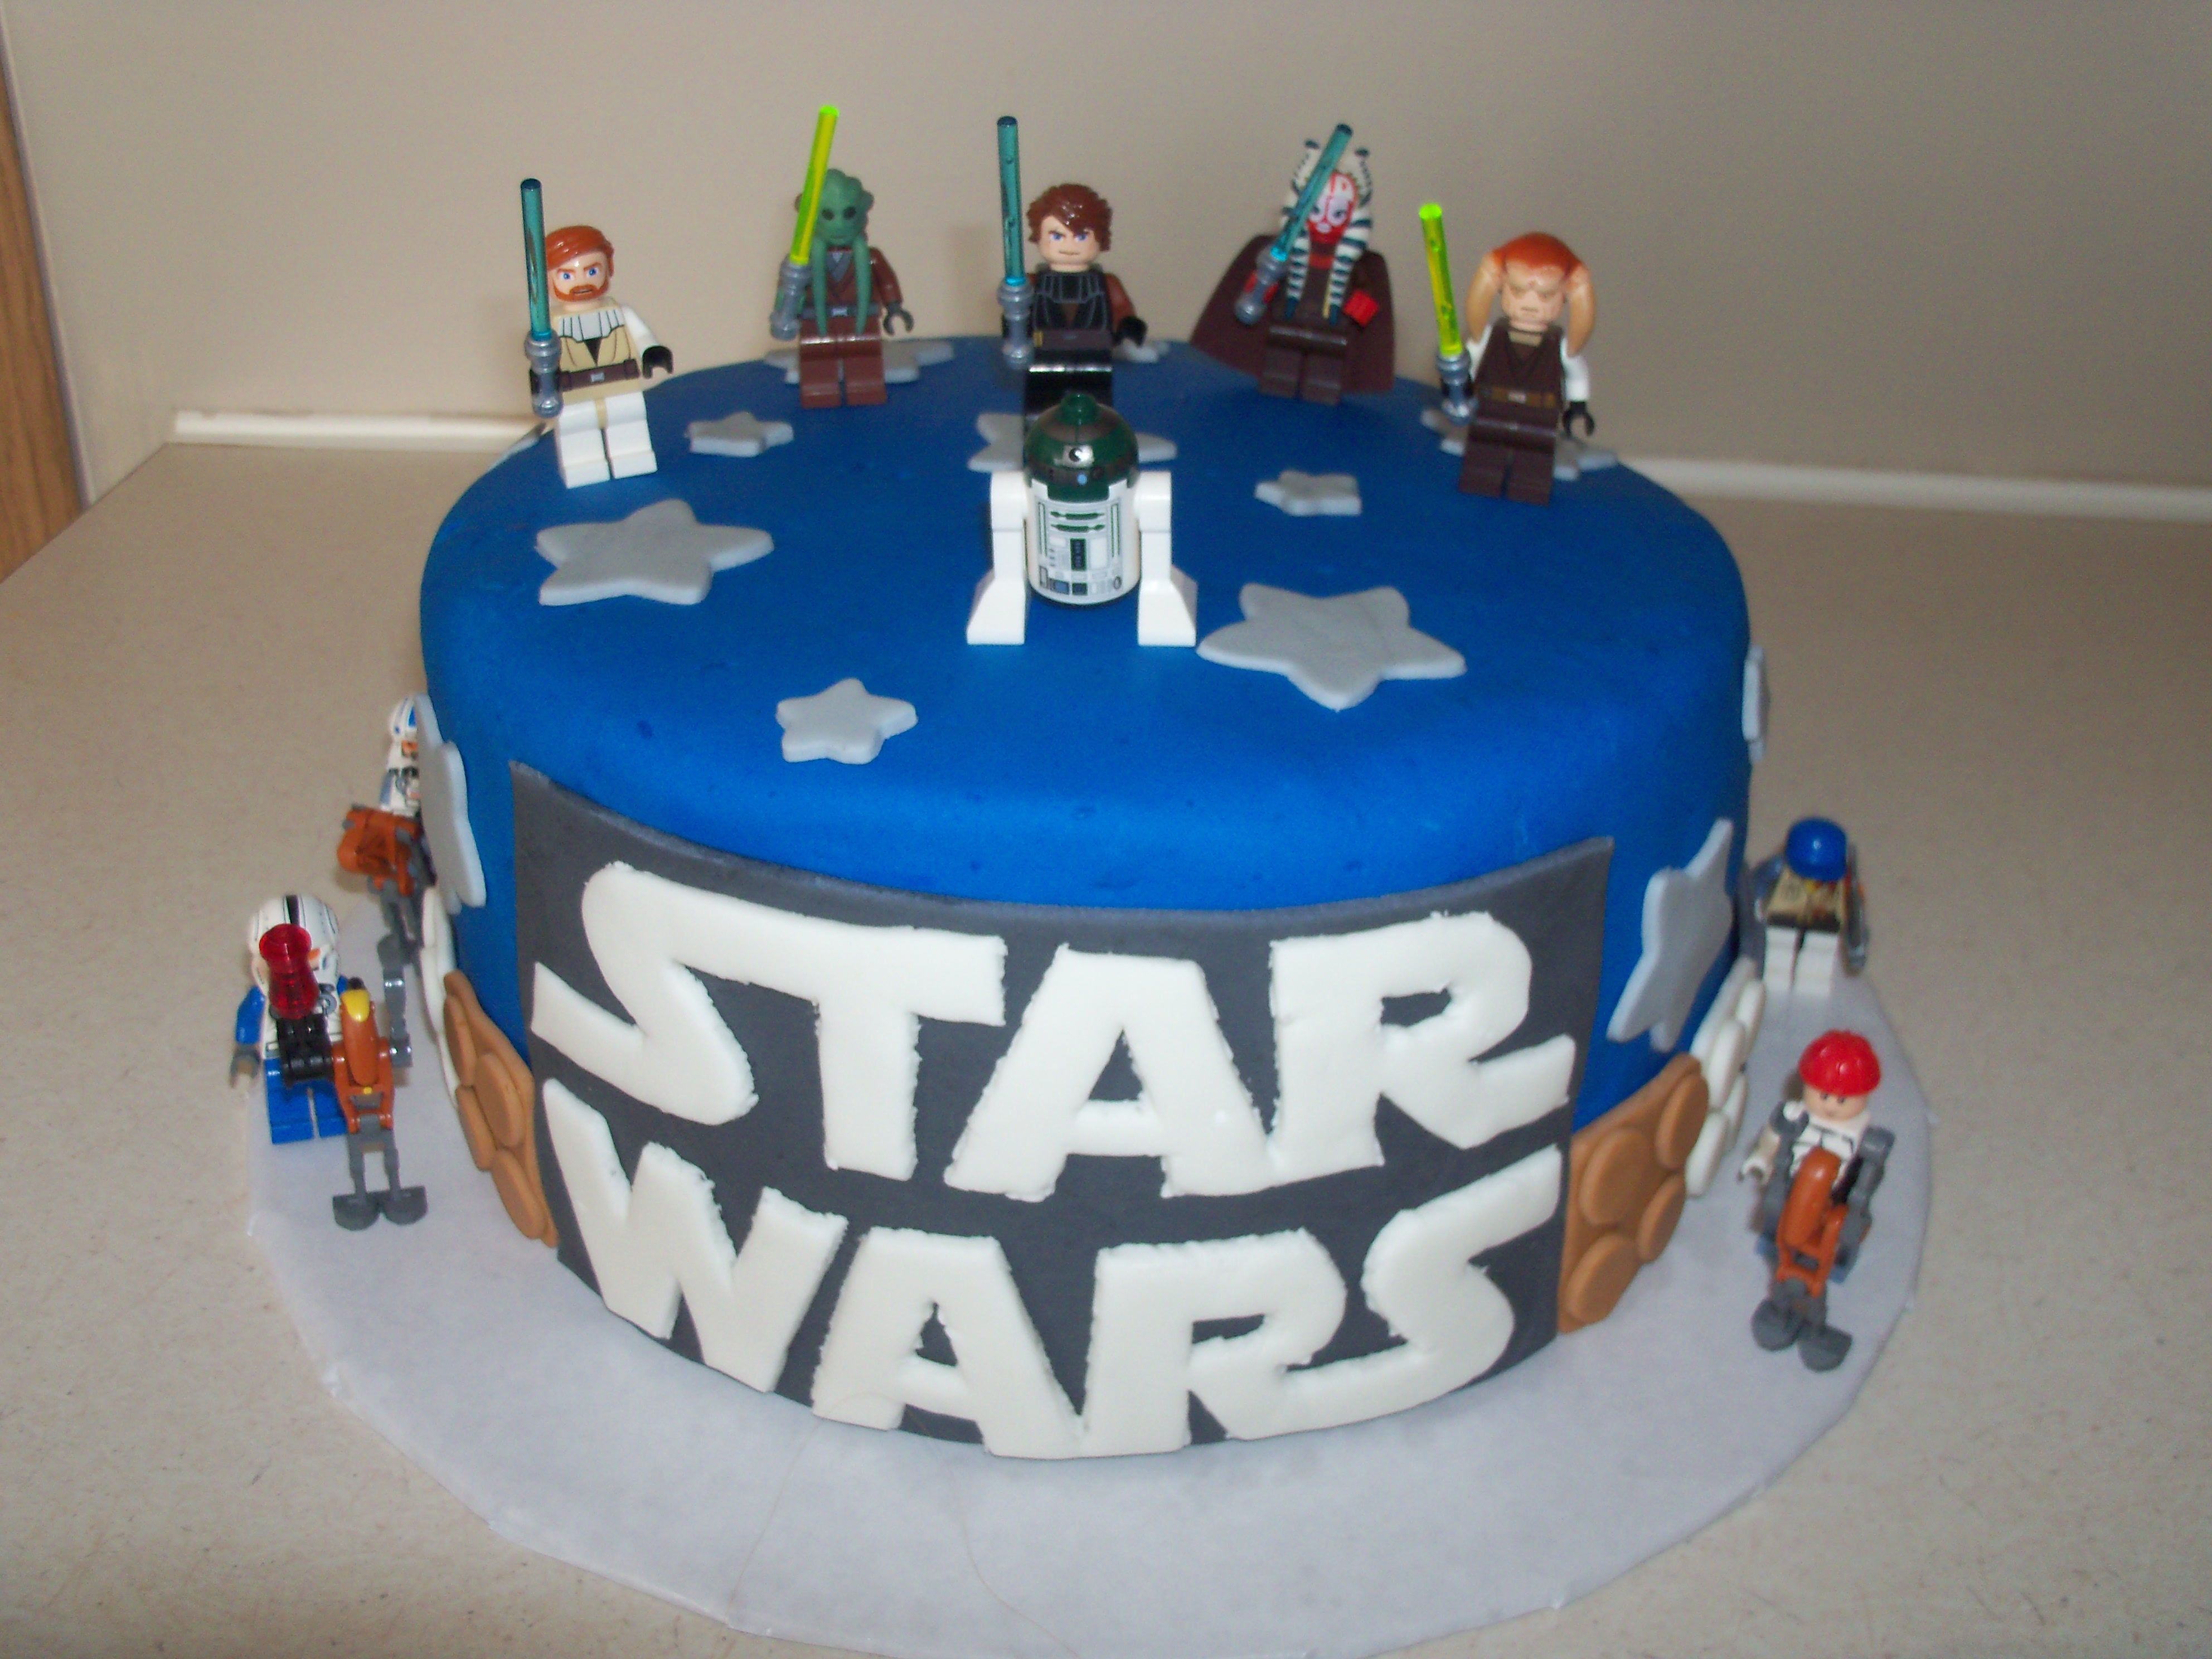 Lego Star Wars Cake With Images Star Wars Birthday Cake Star